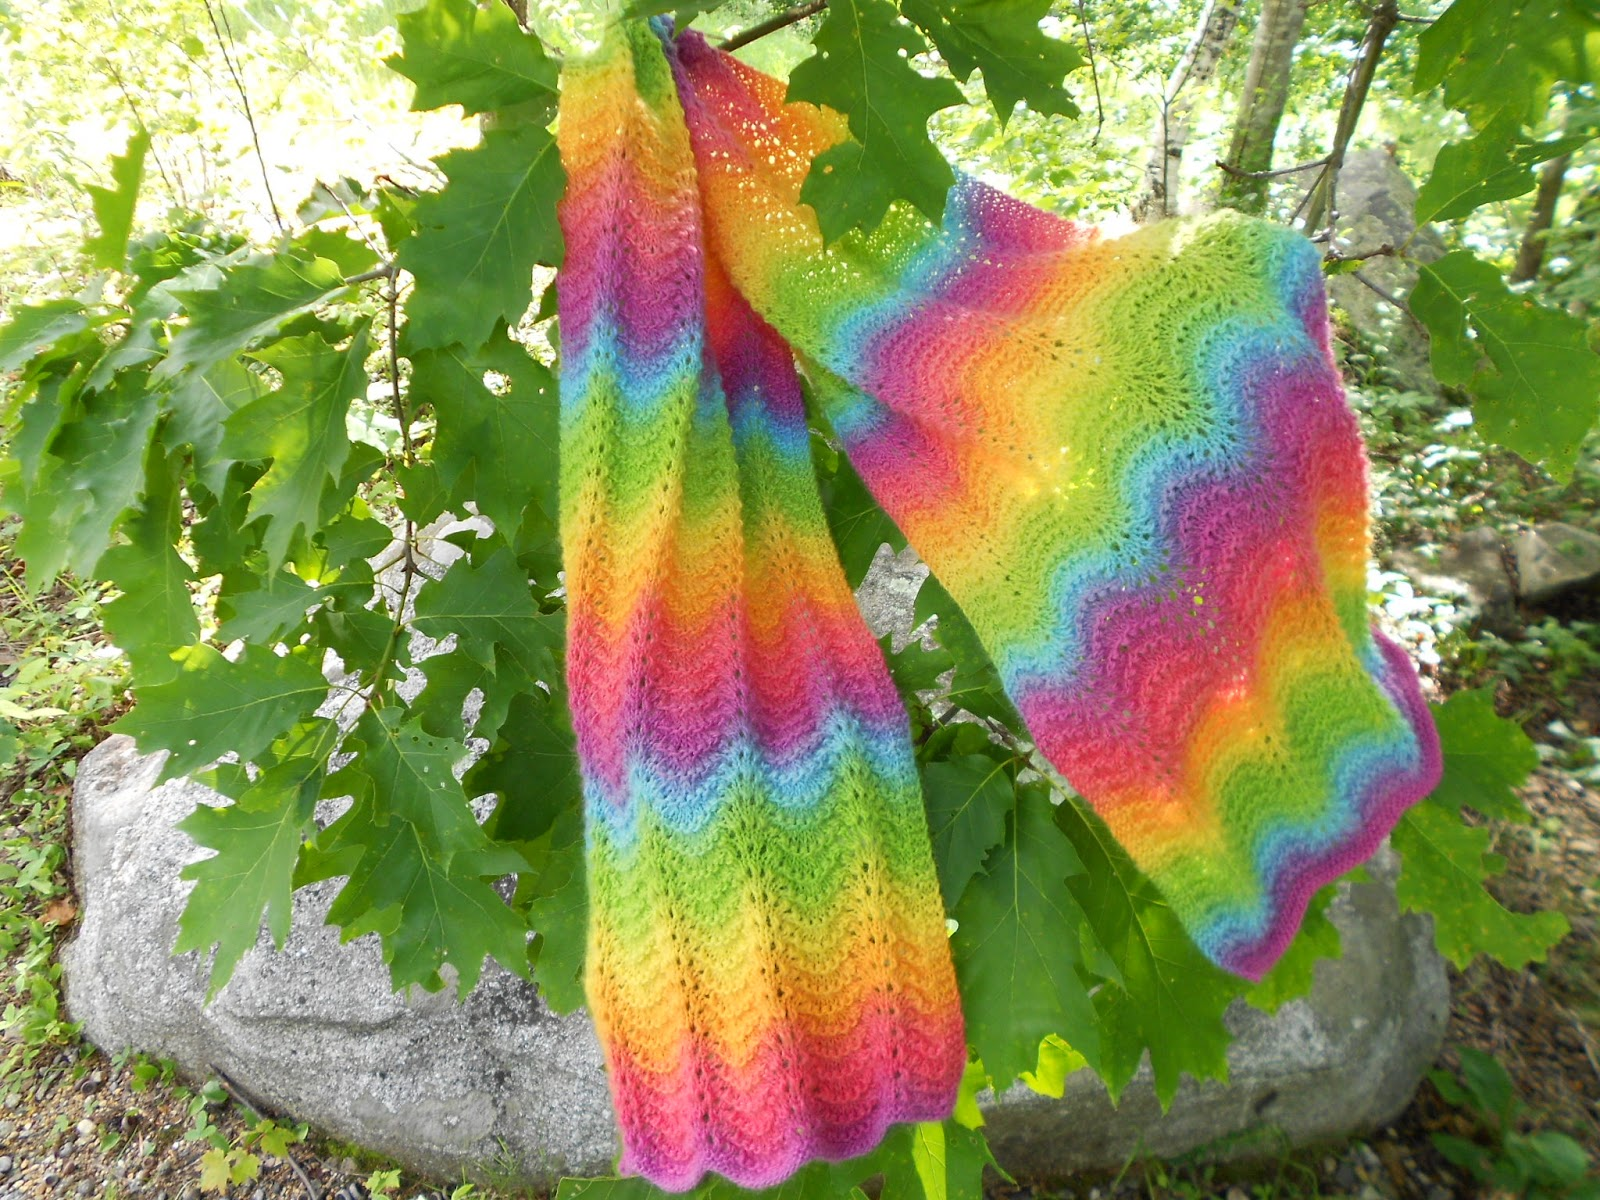 Merry Melody Designs: How to find links to 3 Free Patterns